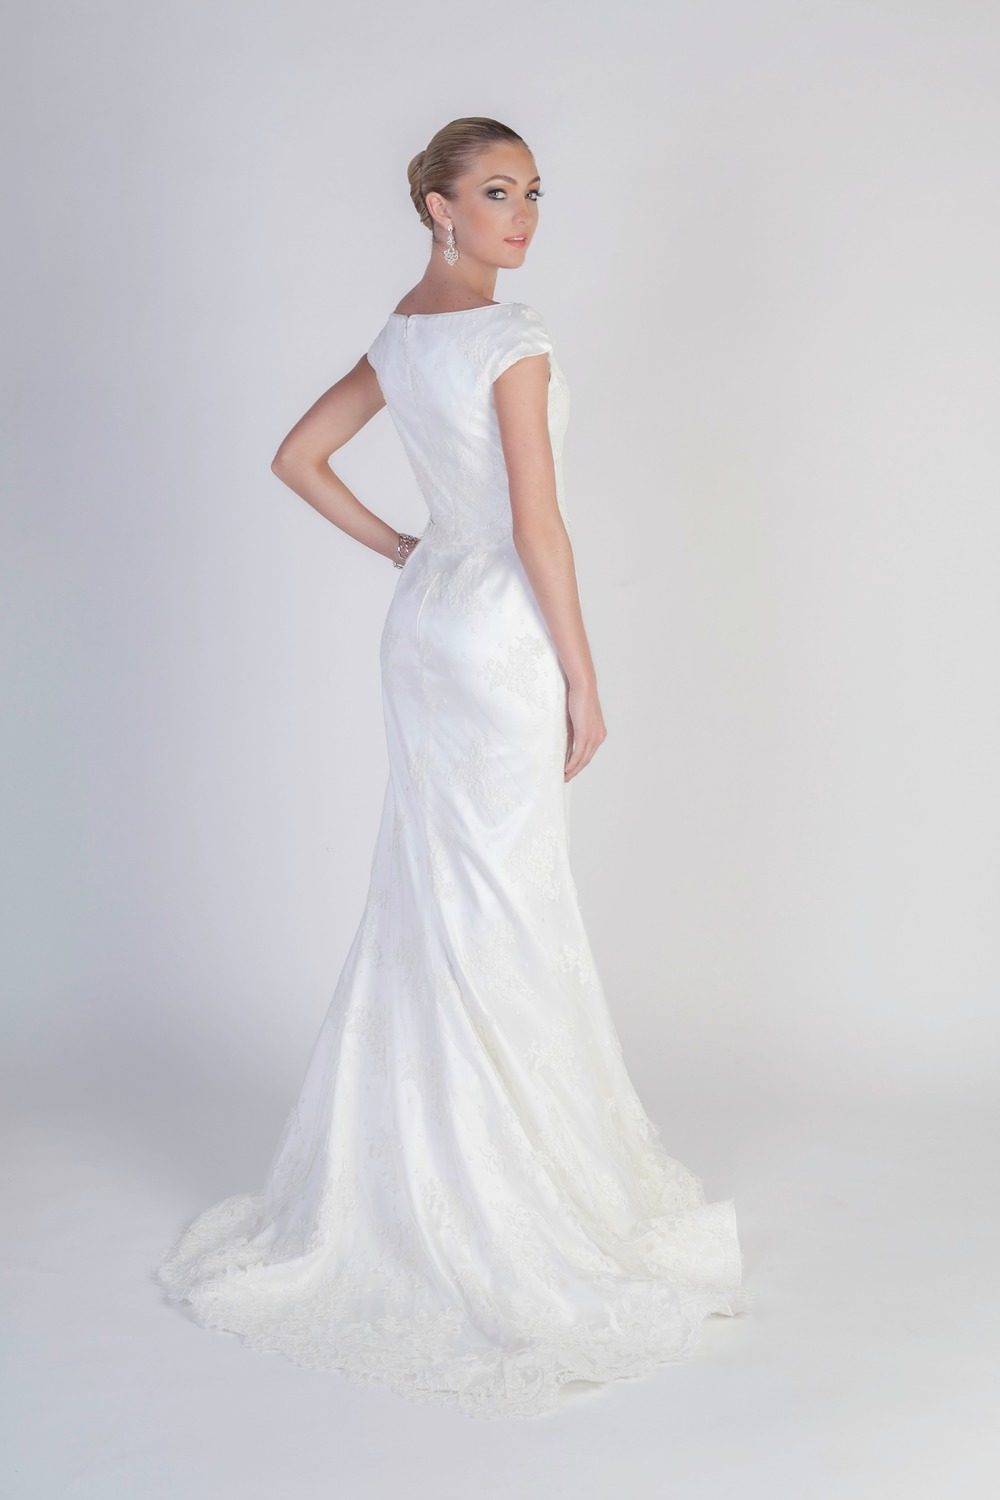 6a32afff JeanRalphThurin | A Luxury Bridal Design House - Bridal Collection